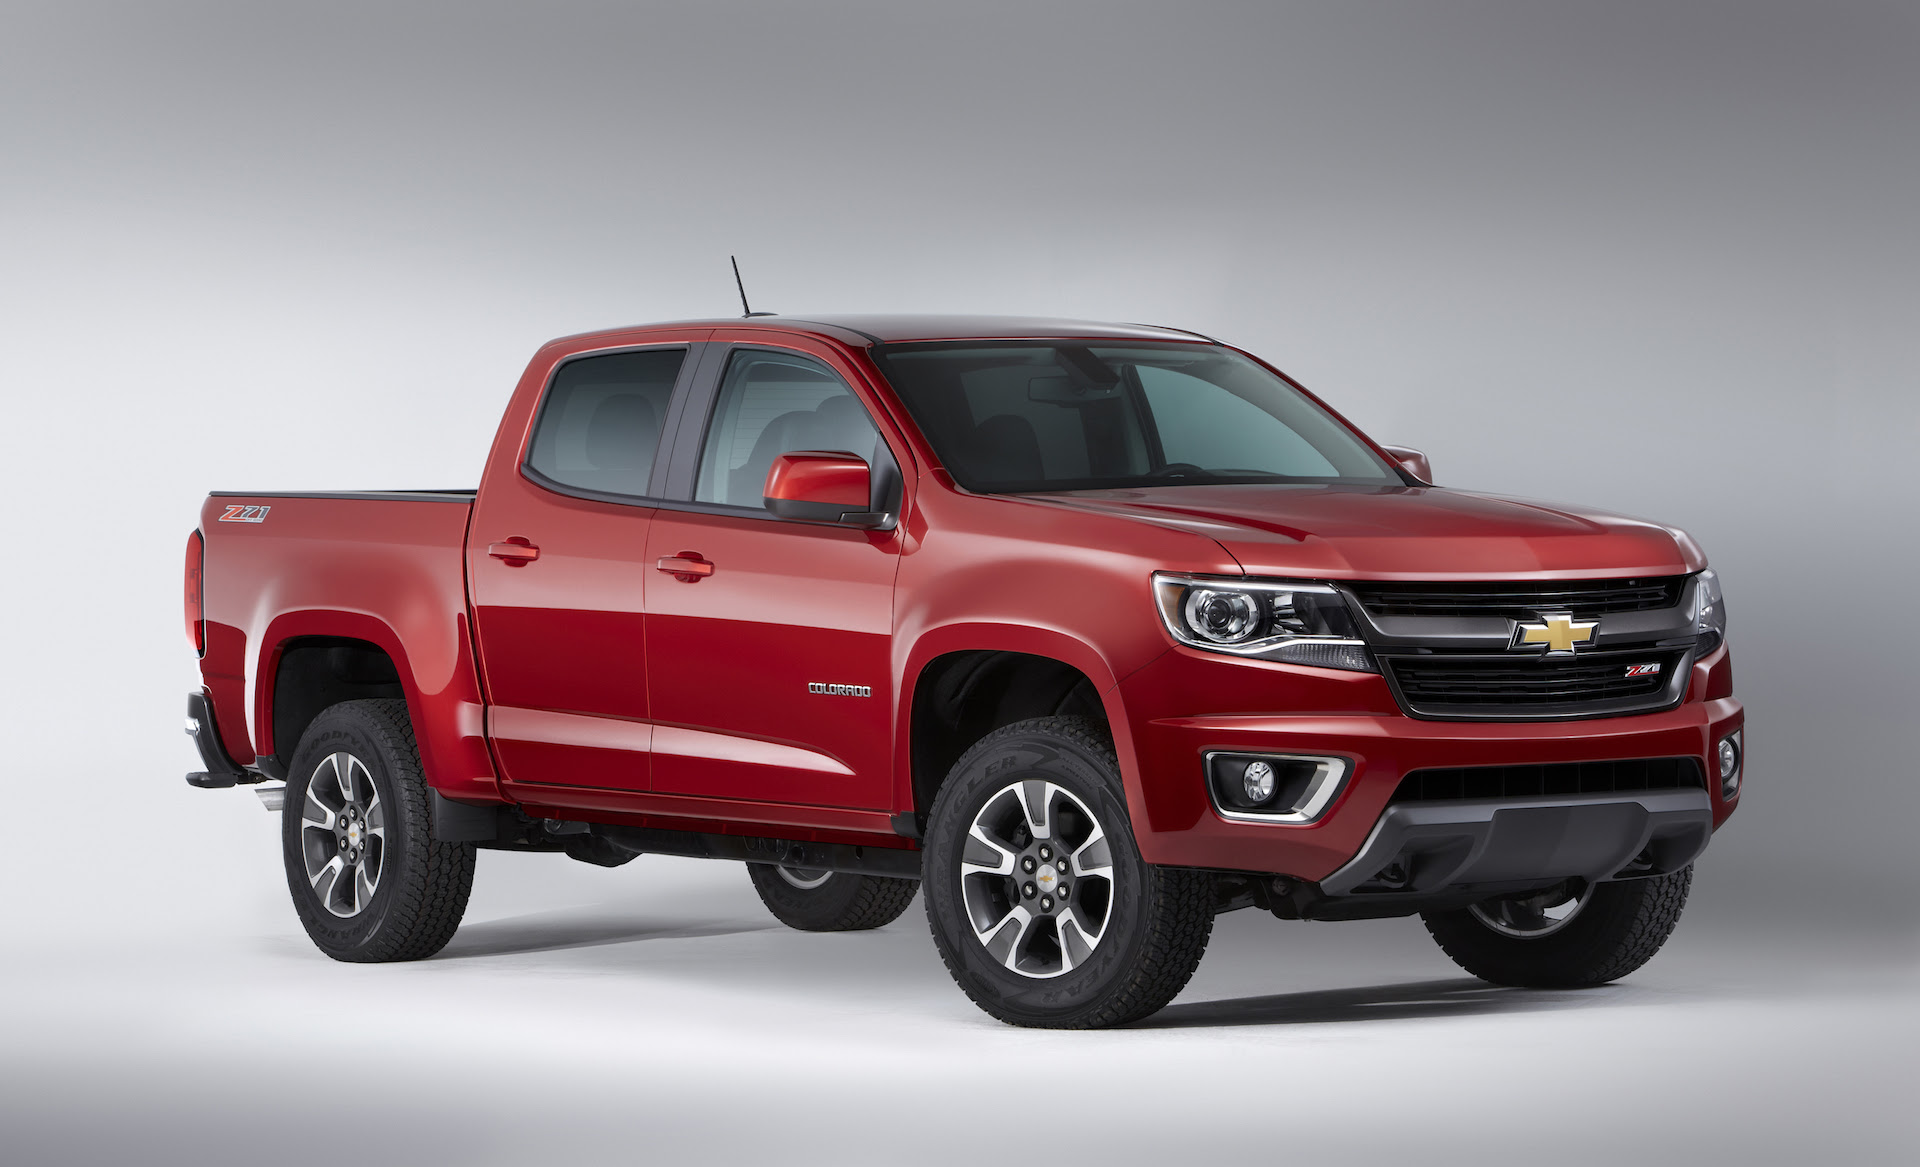 2016 Chevrolet Colorado (Chevy) Review, Ratings, Specs, Prices, and ...